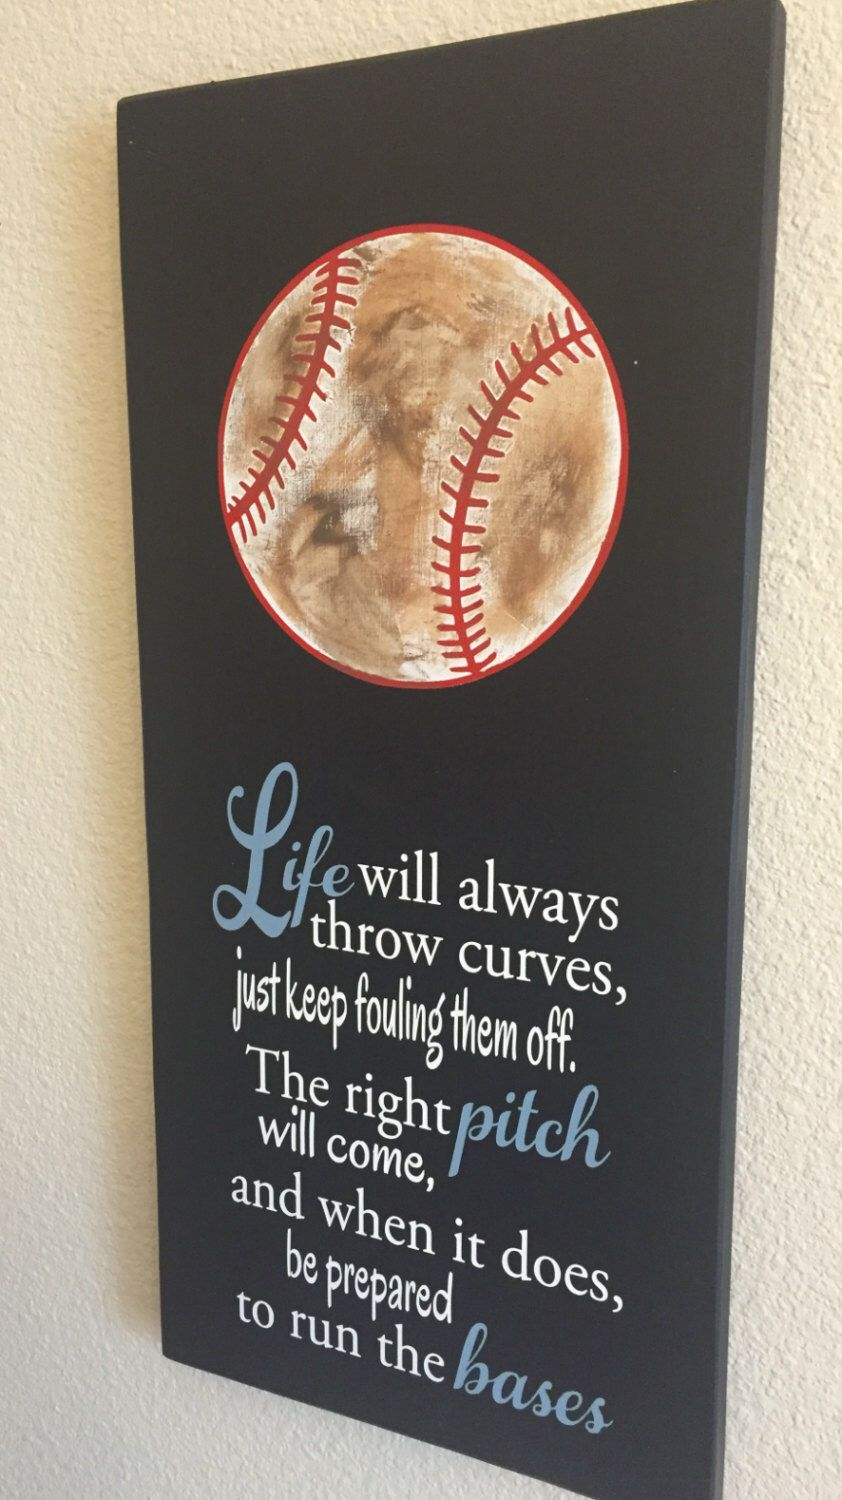 Softball friendship quotes quotesgram - Life Will Always Throw Curves Baseball Softball Sign Decor Inspirational Quote Baseball